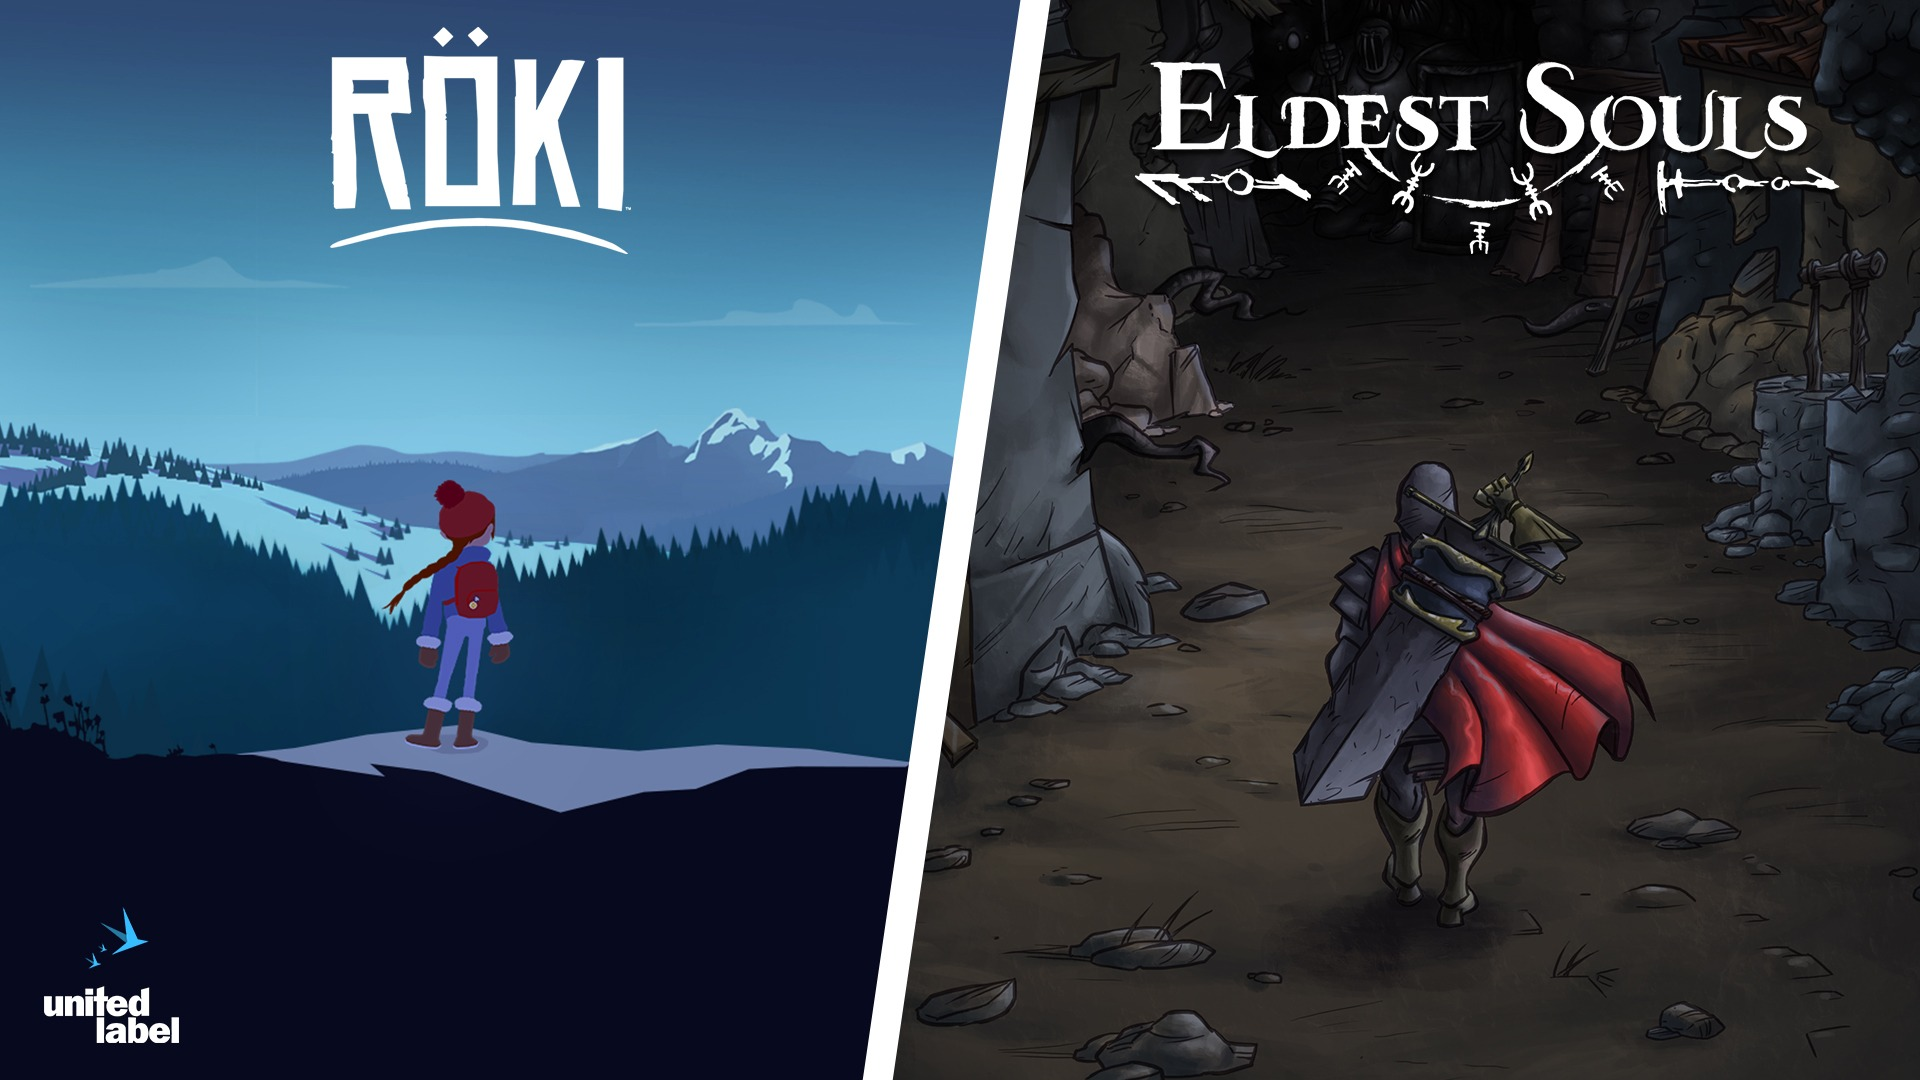 CI Games' United Label titles Röki & Eldest Souls CI Games